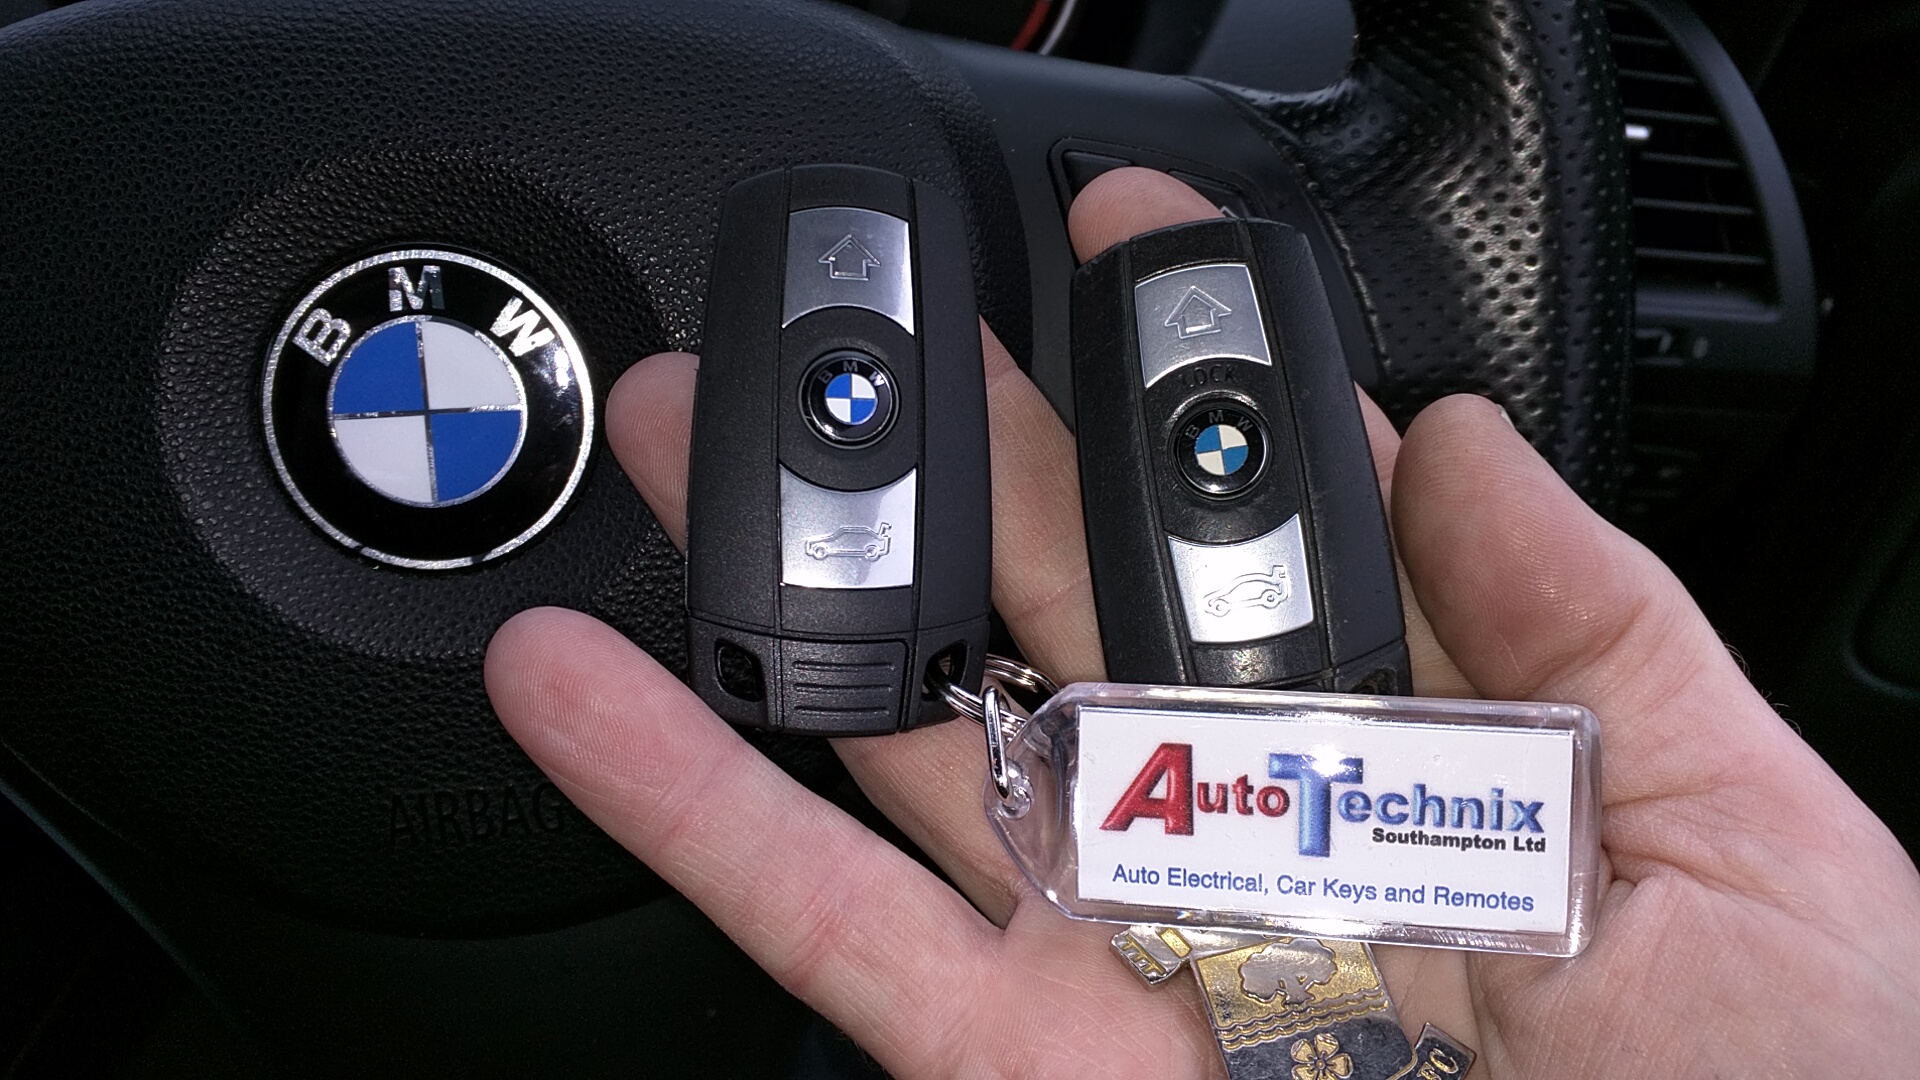 Replacement Car Van Keys Autotechnix Southampton Ltd